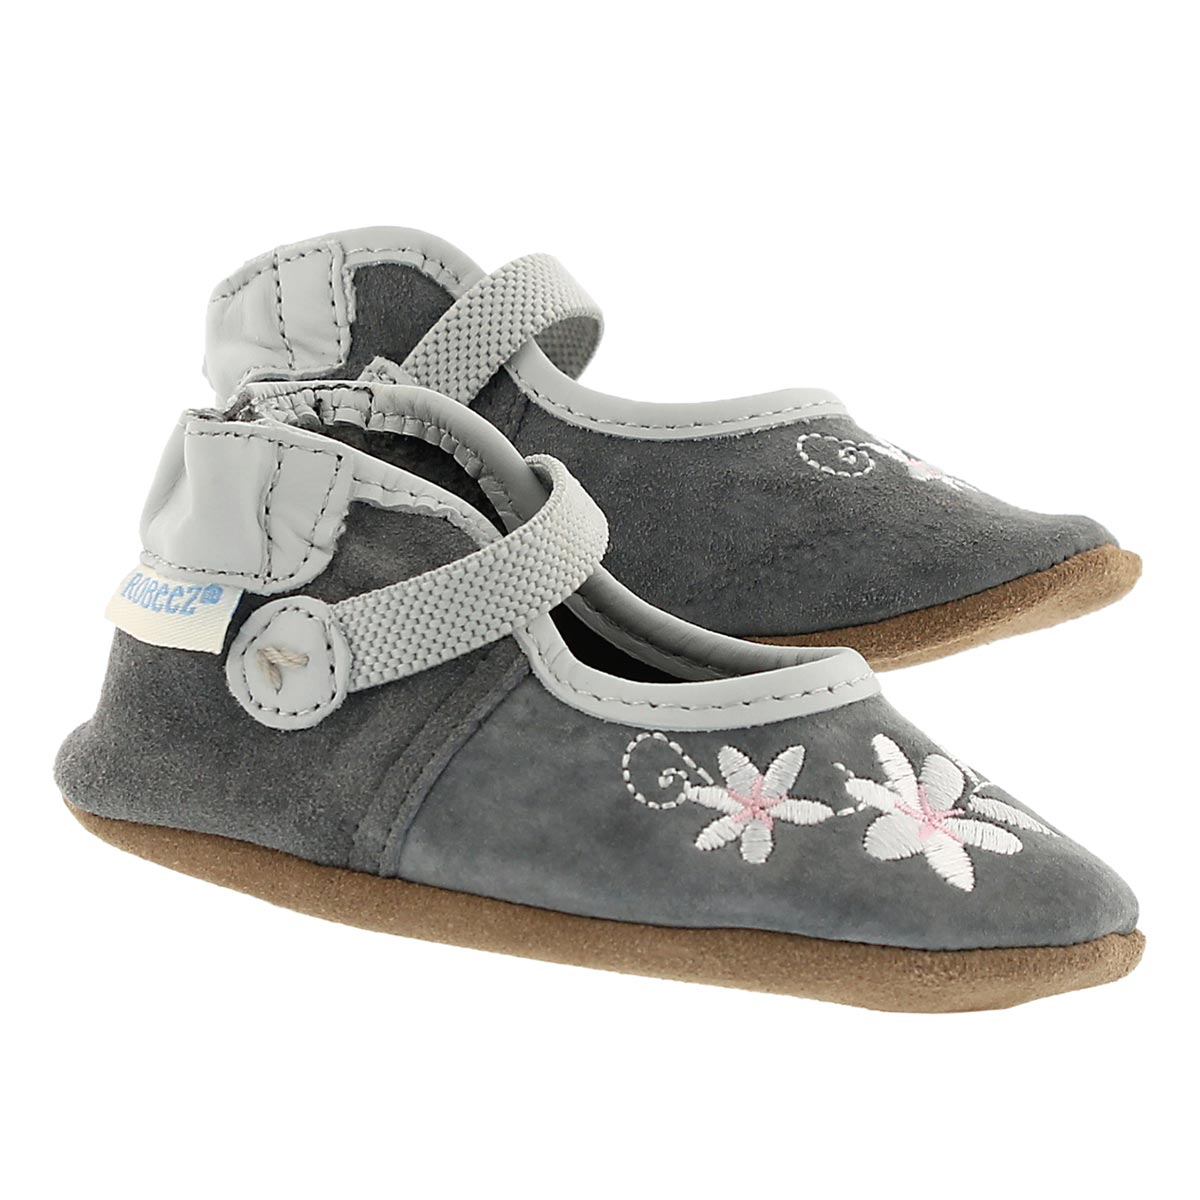 Inf Cool Water Mary grey slipper